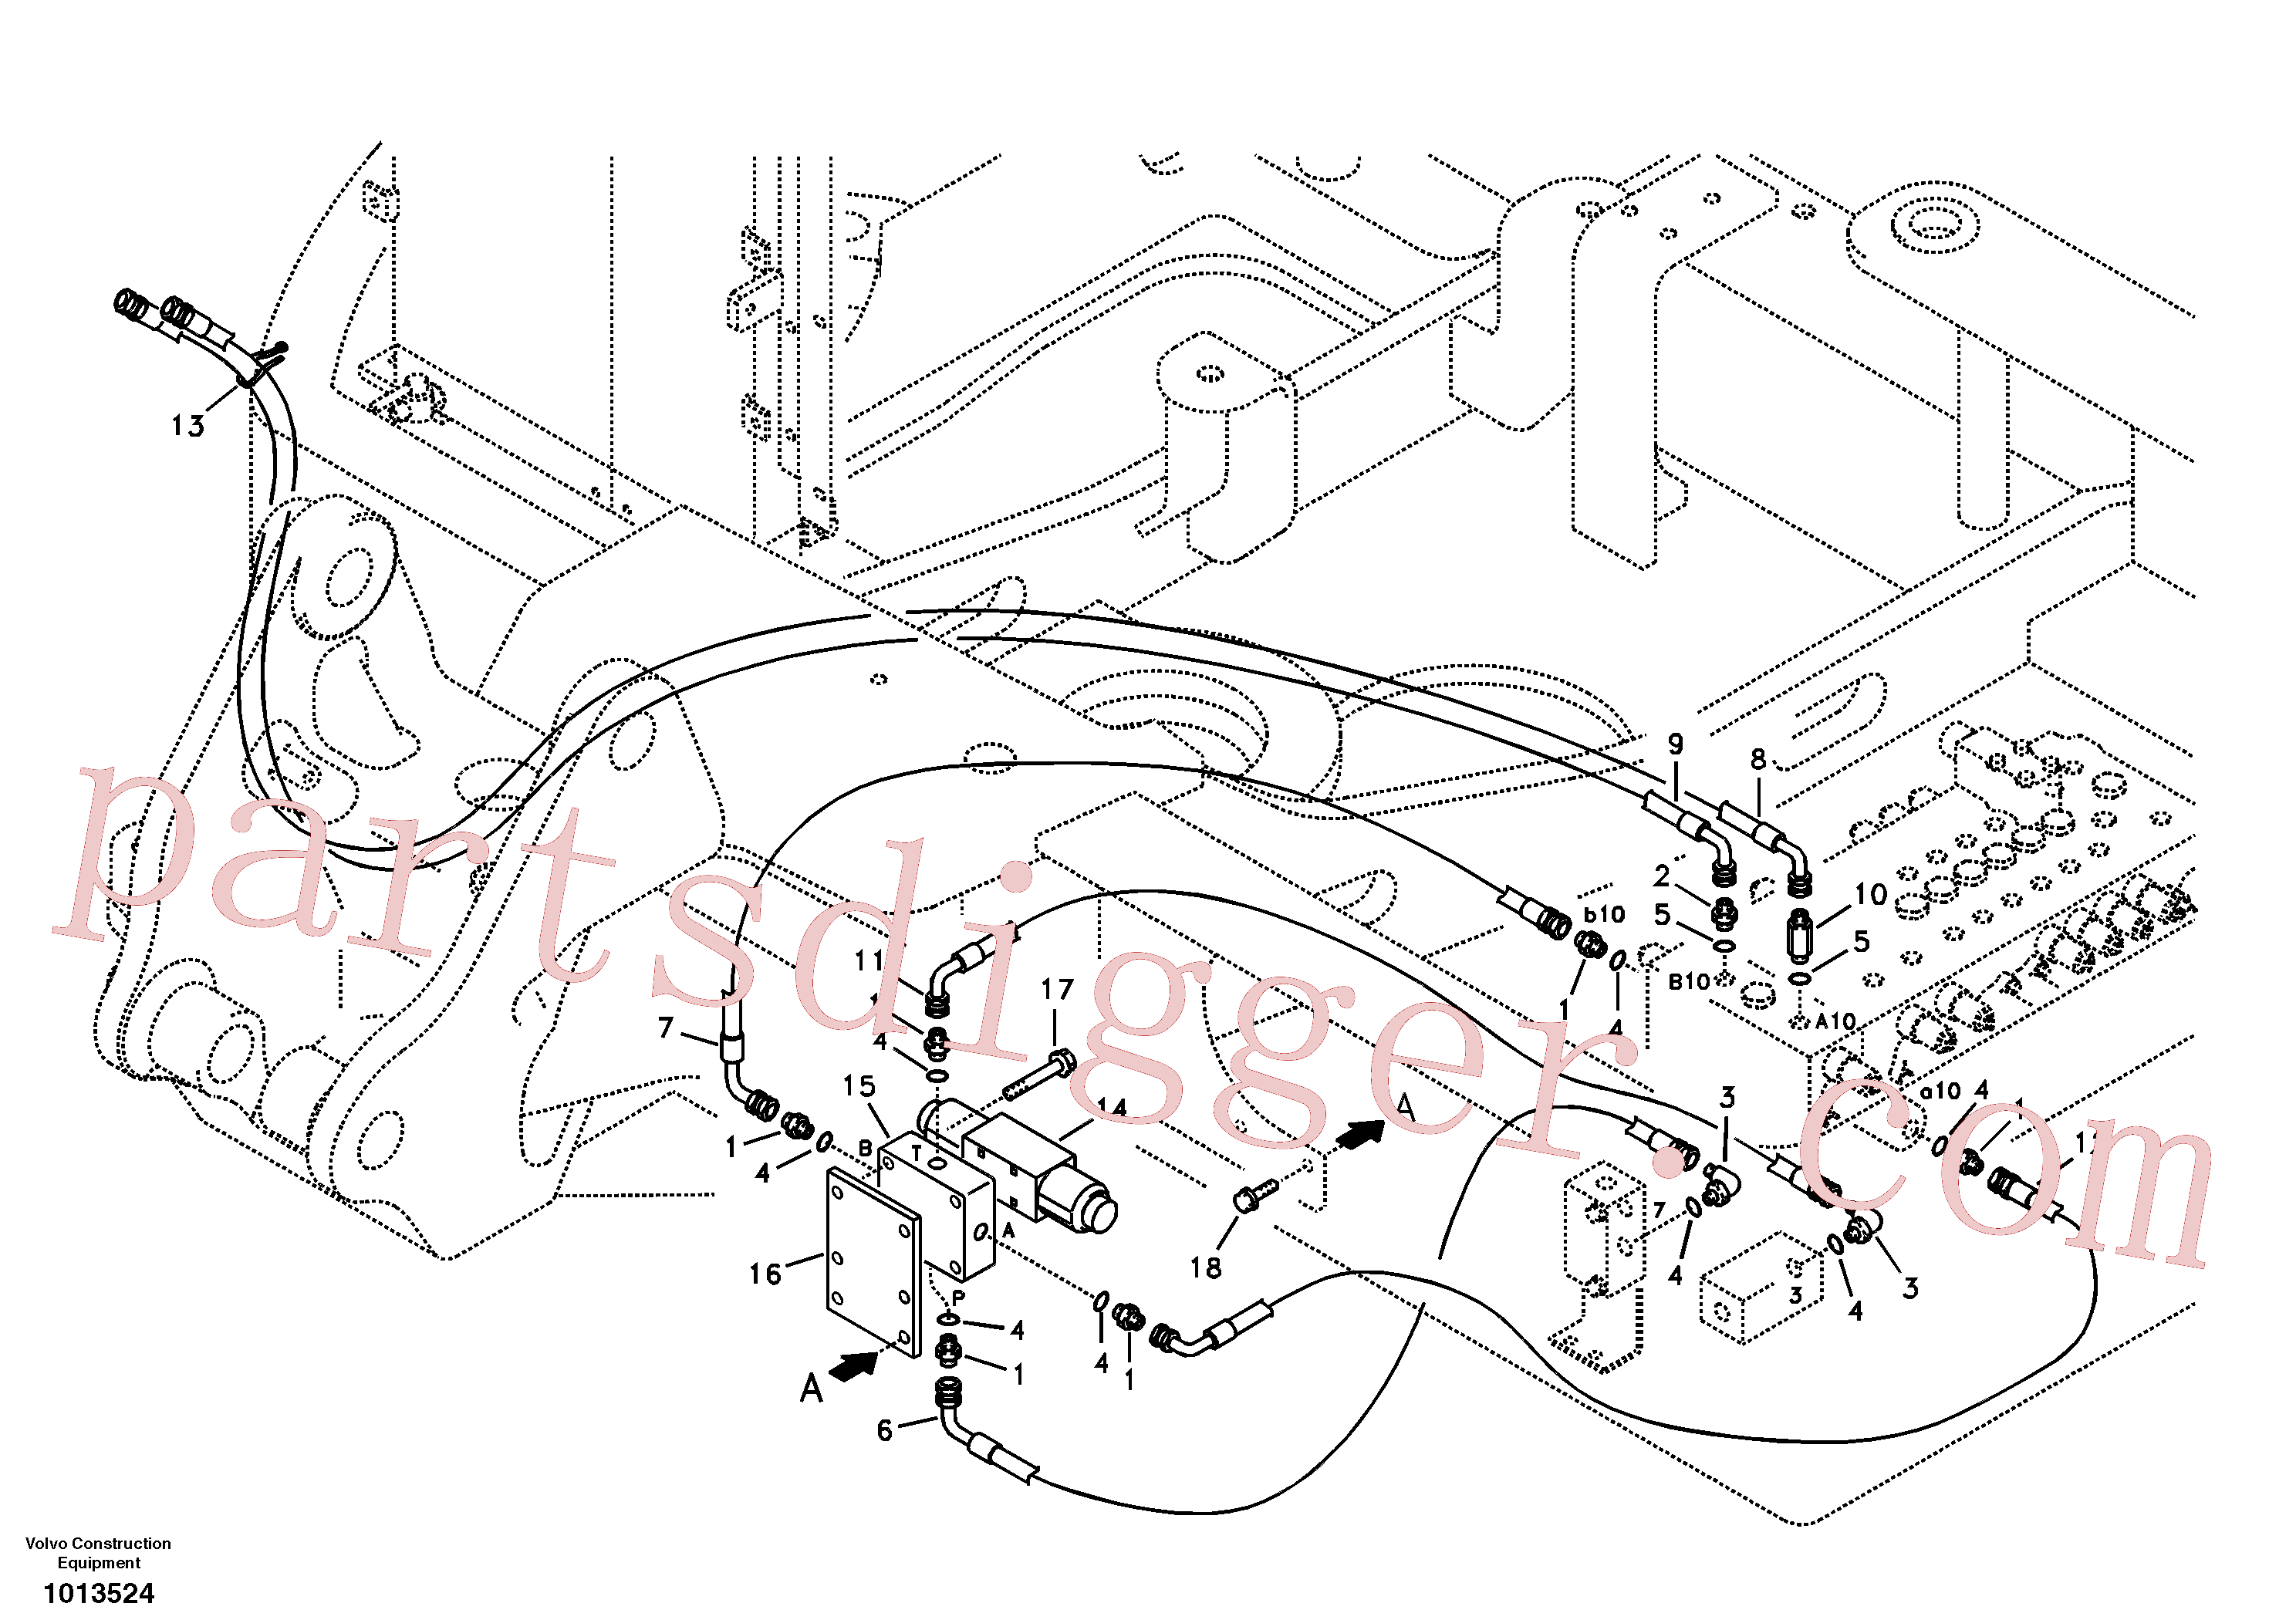 SA9453-02213 for Volvo Working hydraulic, slope and rotator on upper frame(1013524 assembly)